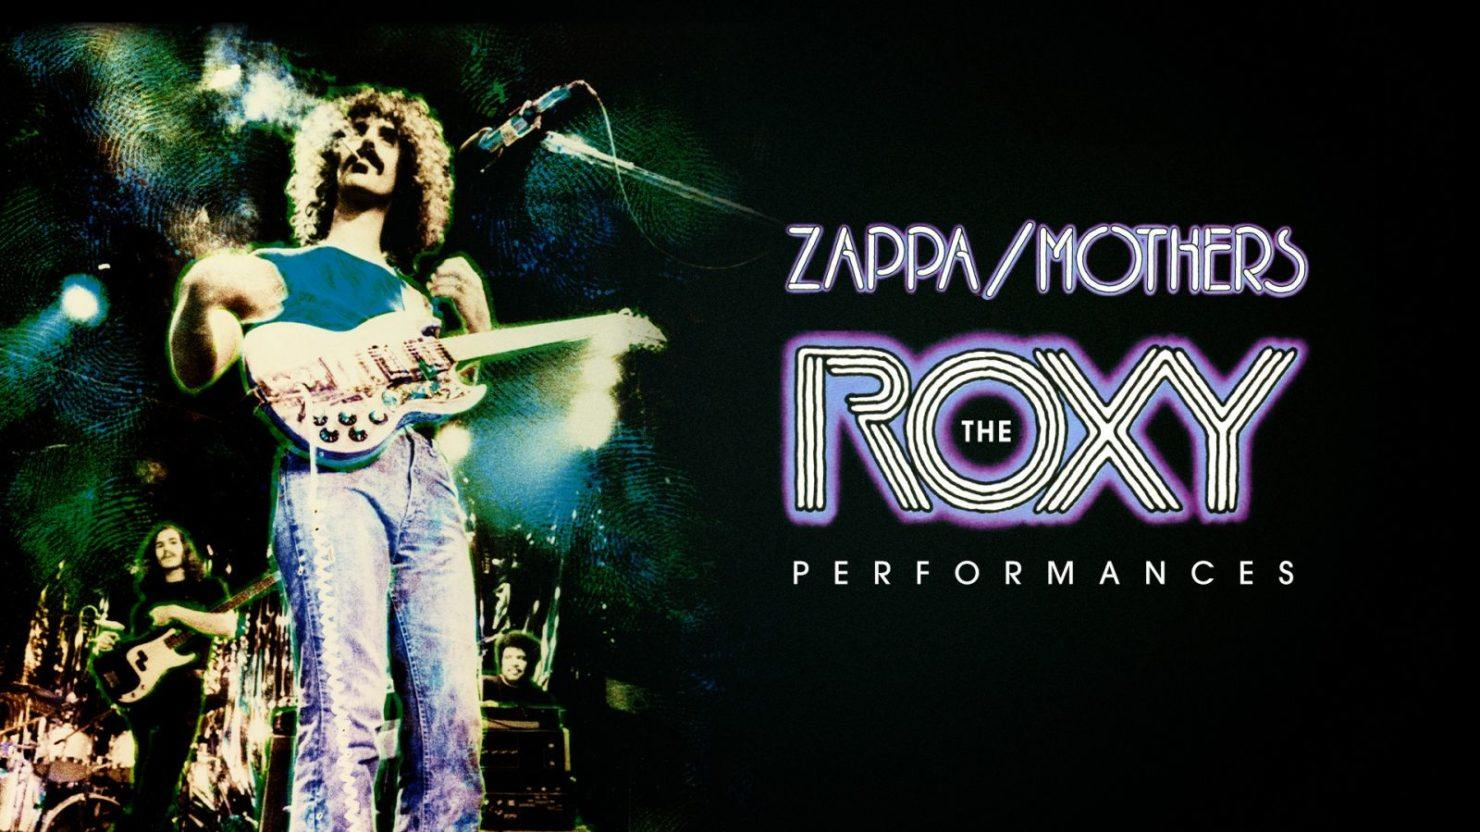 Frank Zappa's Famed 1973 'The Roxy Performances' To Be Released As 7-CD Box Set